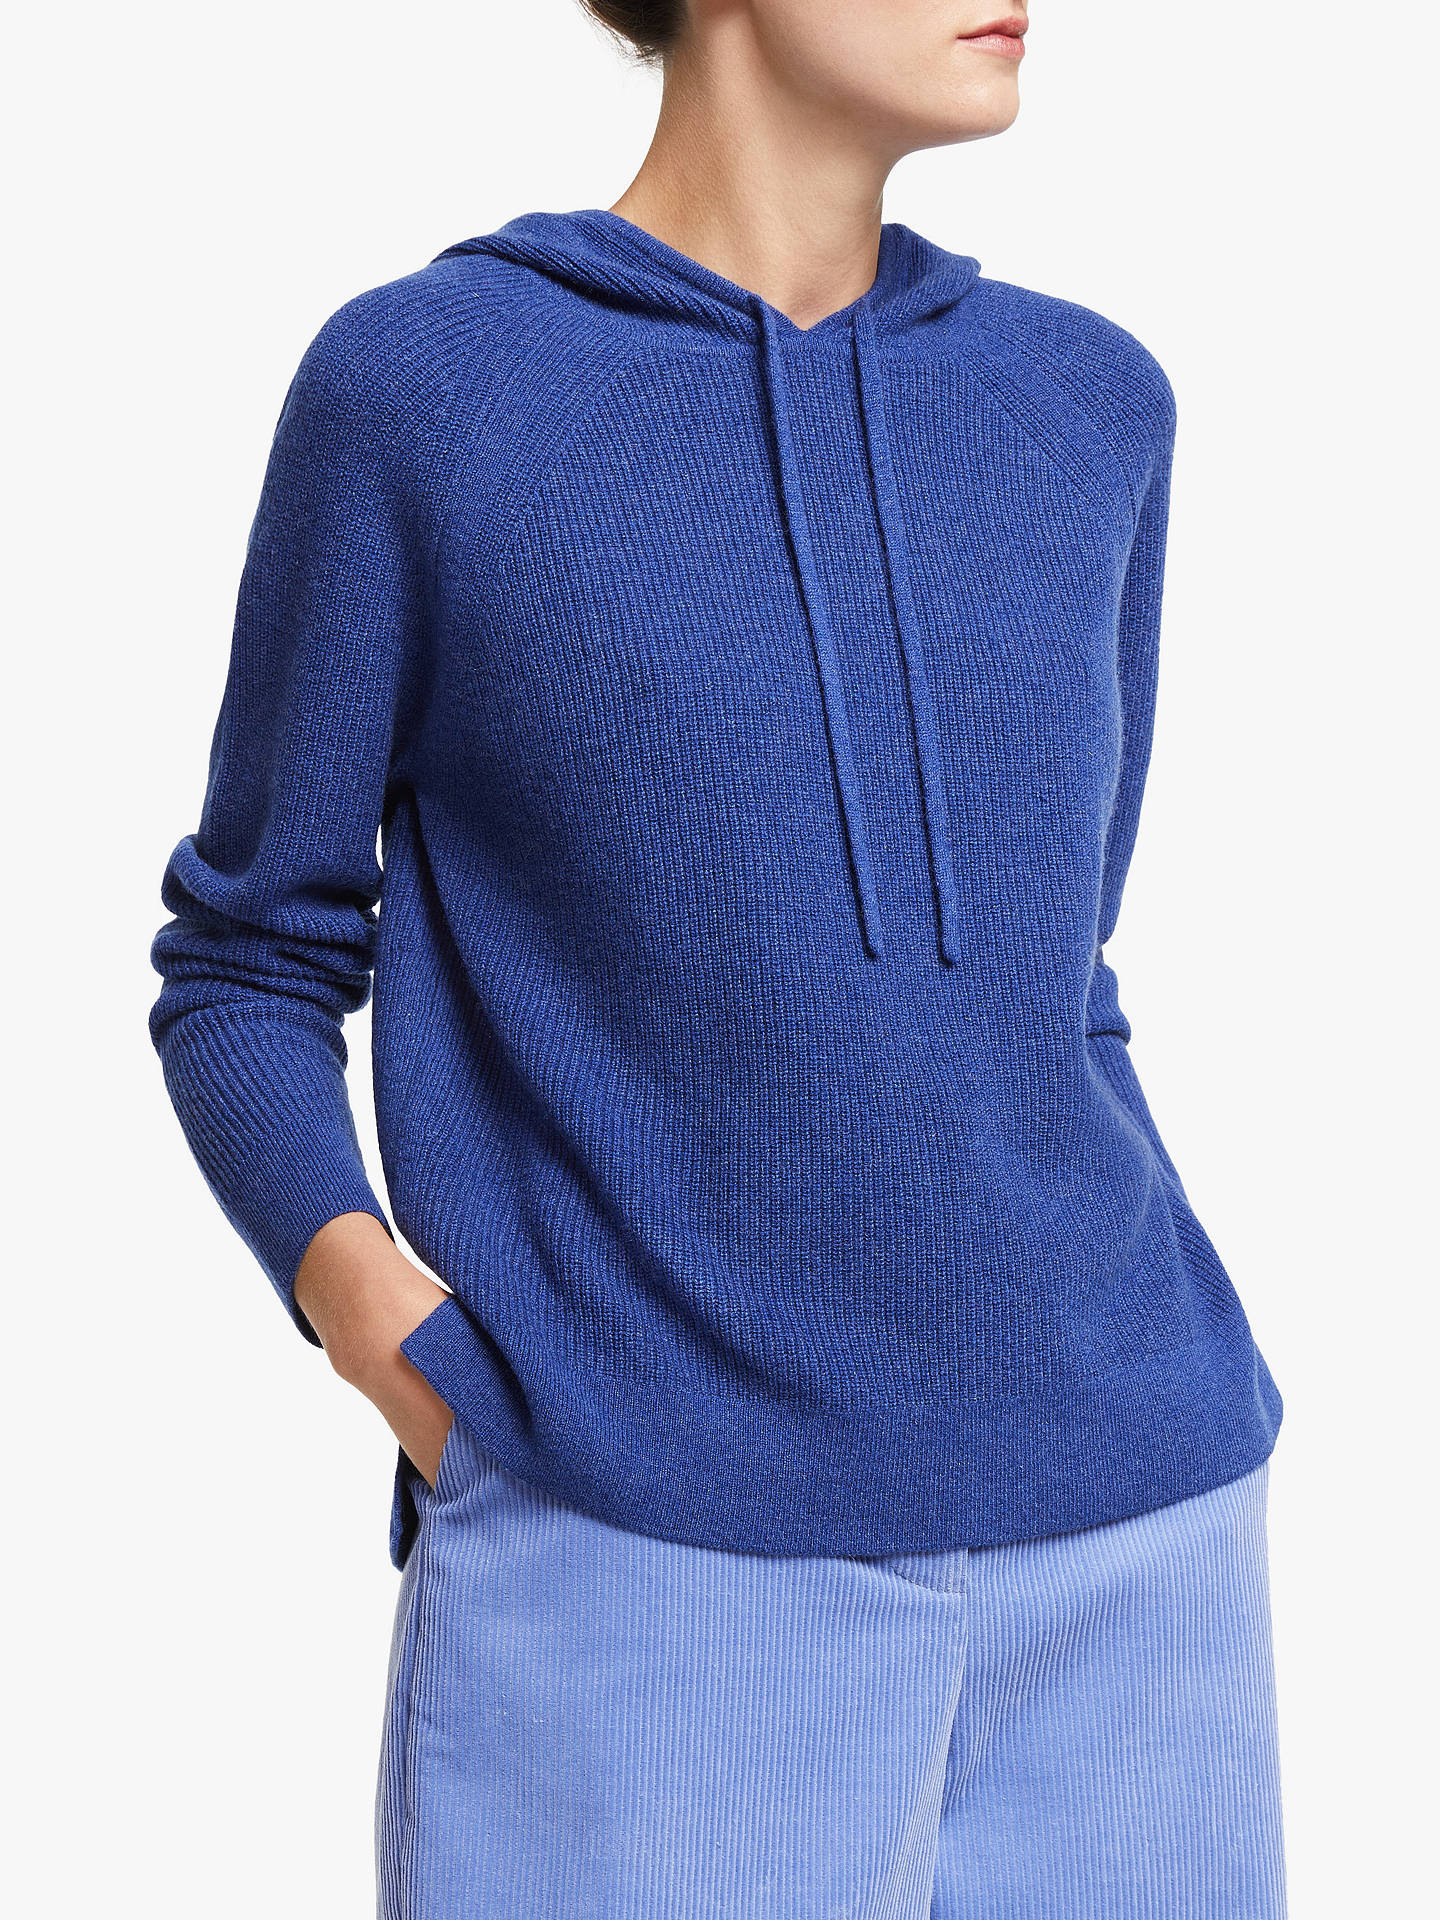 John Lewis & Partners Cashmere Hooded Sweater, Twilight Blue by John Lewis & Partners